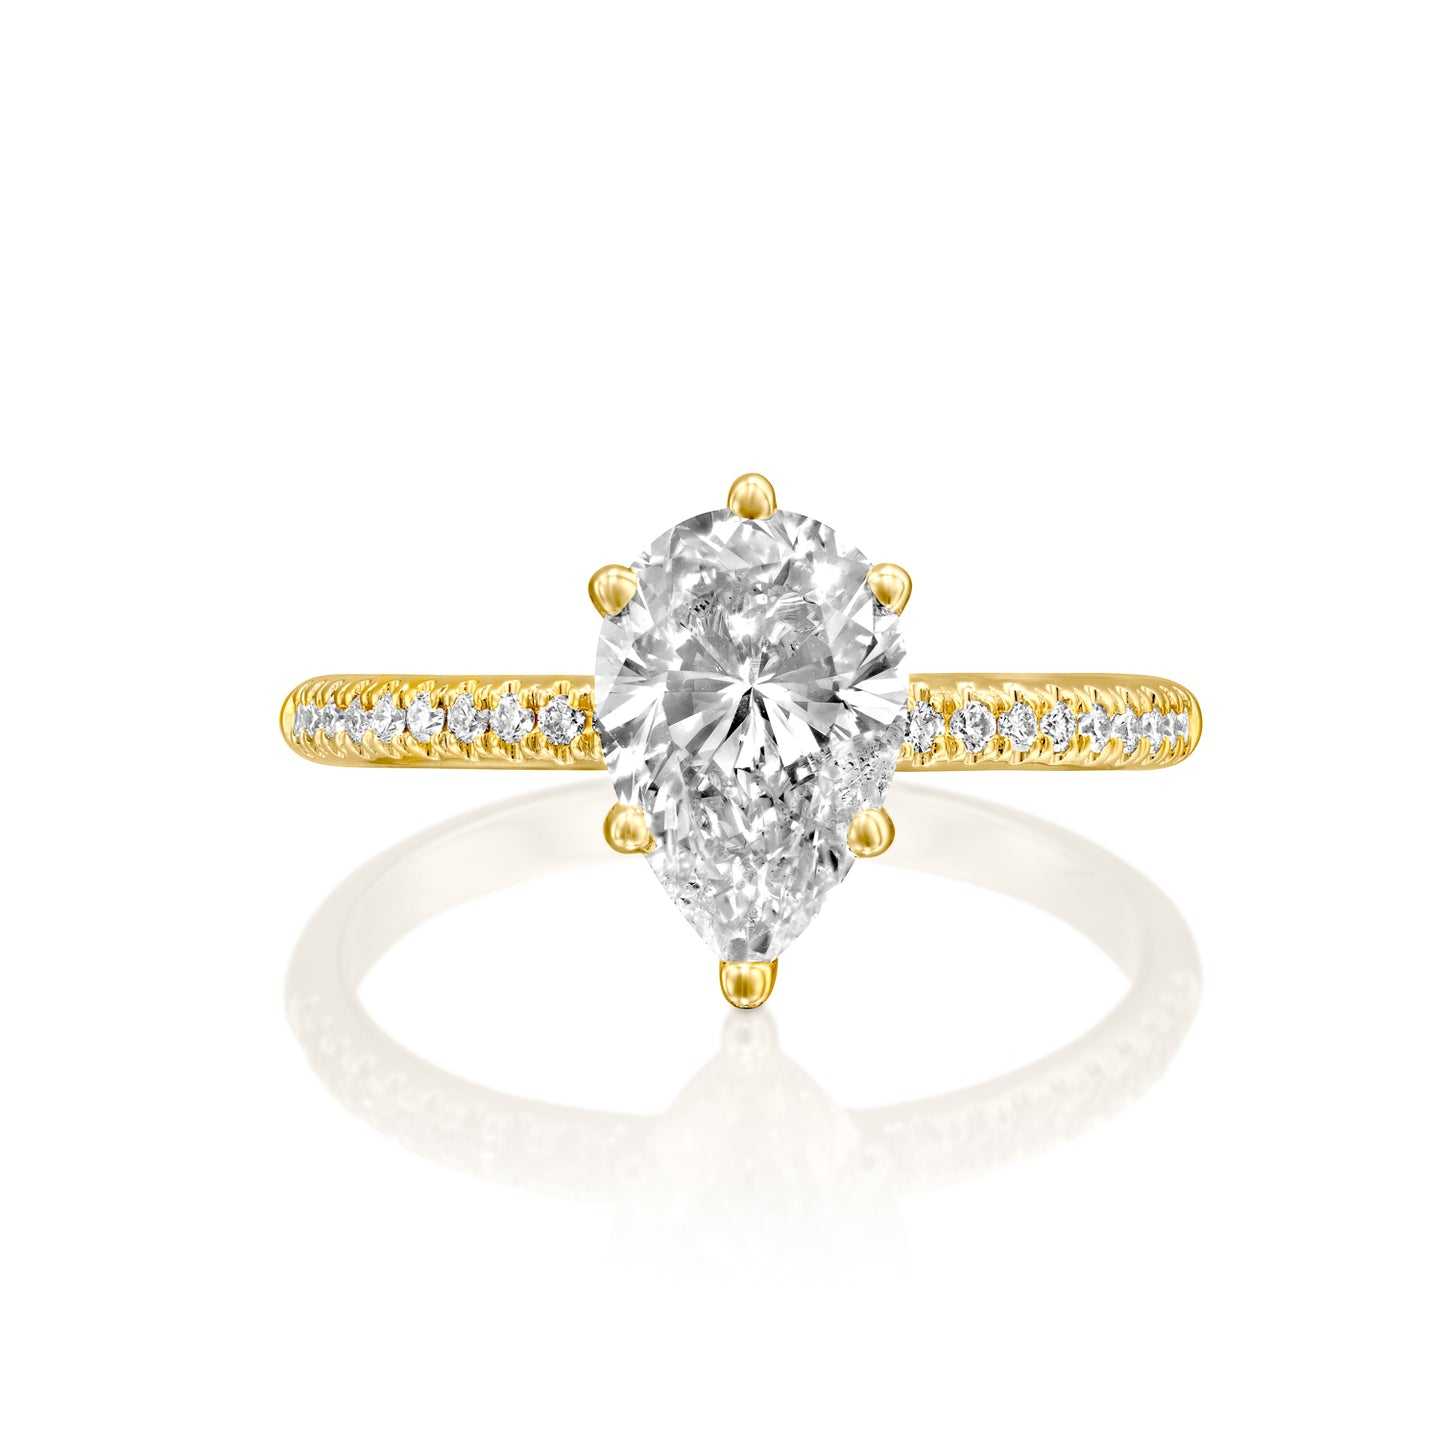 2.3 Carat 14K Yellow Gold Moissanite & Diamonds